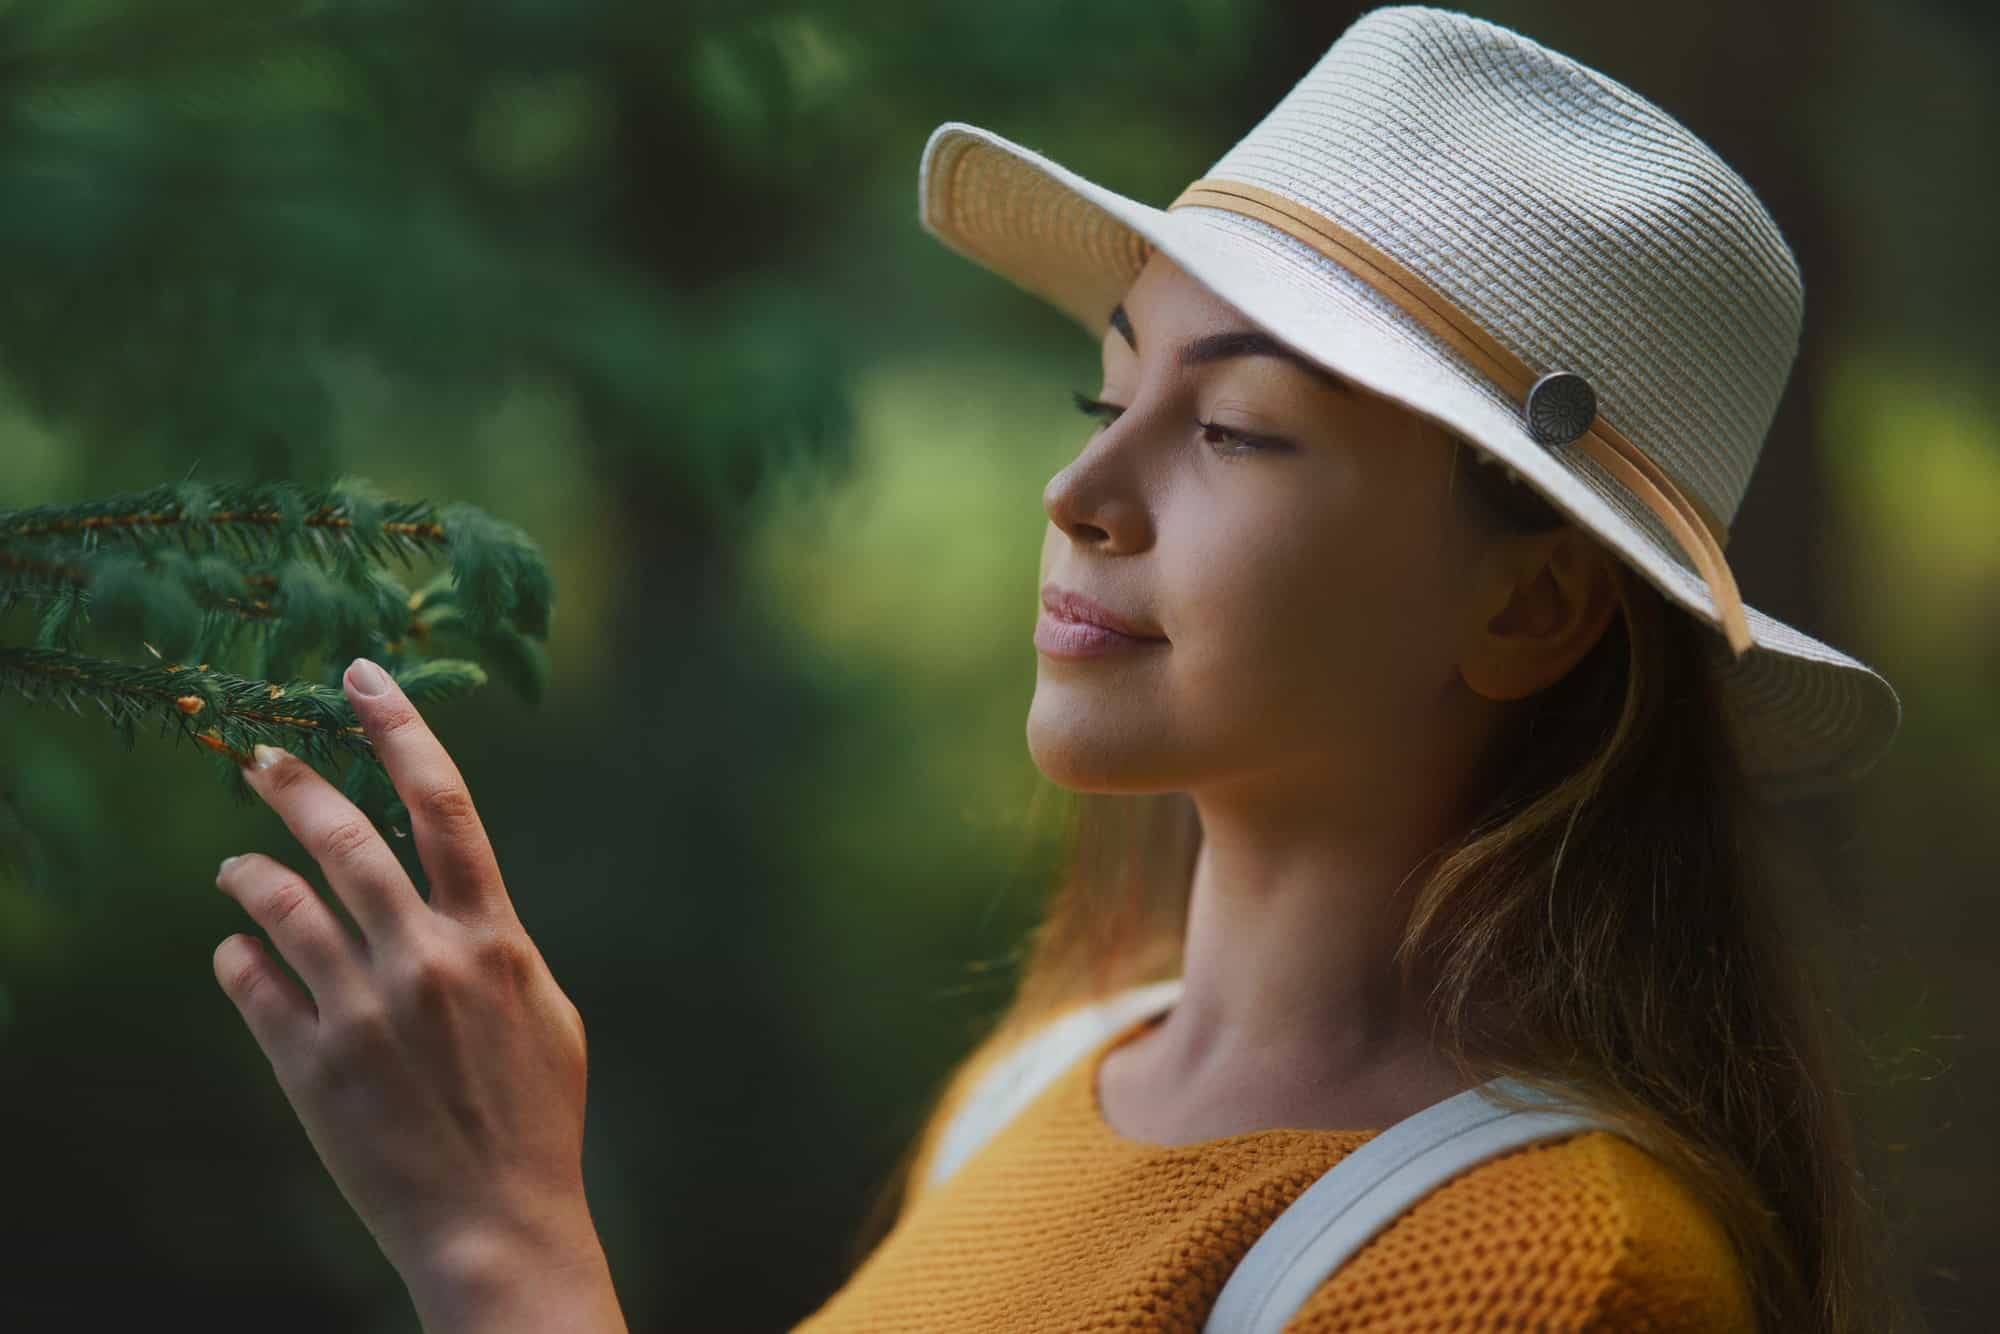 Young woman on a walk outdoors in forest in summer nature, daydreaming